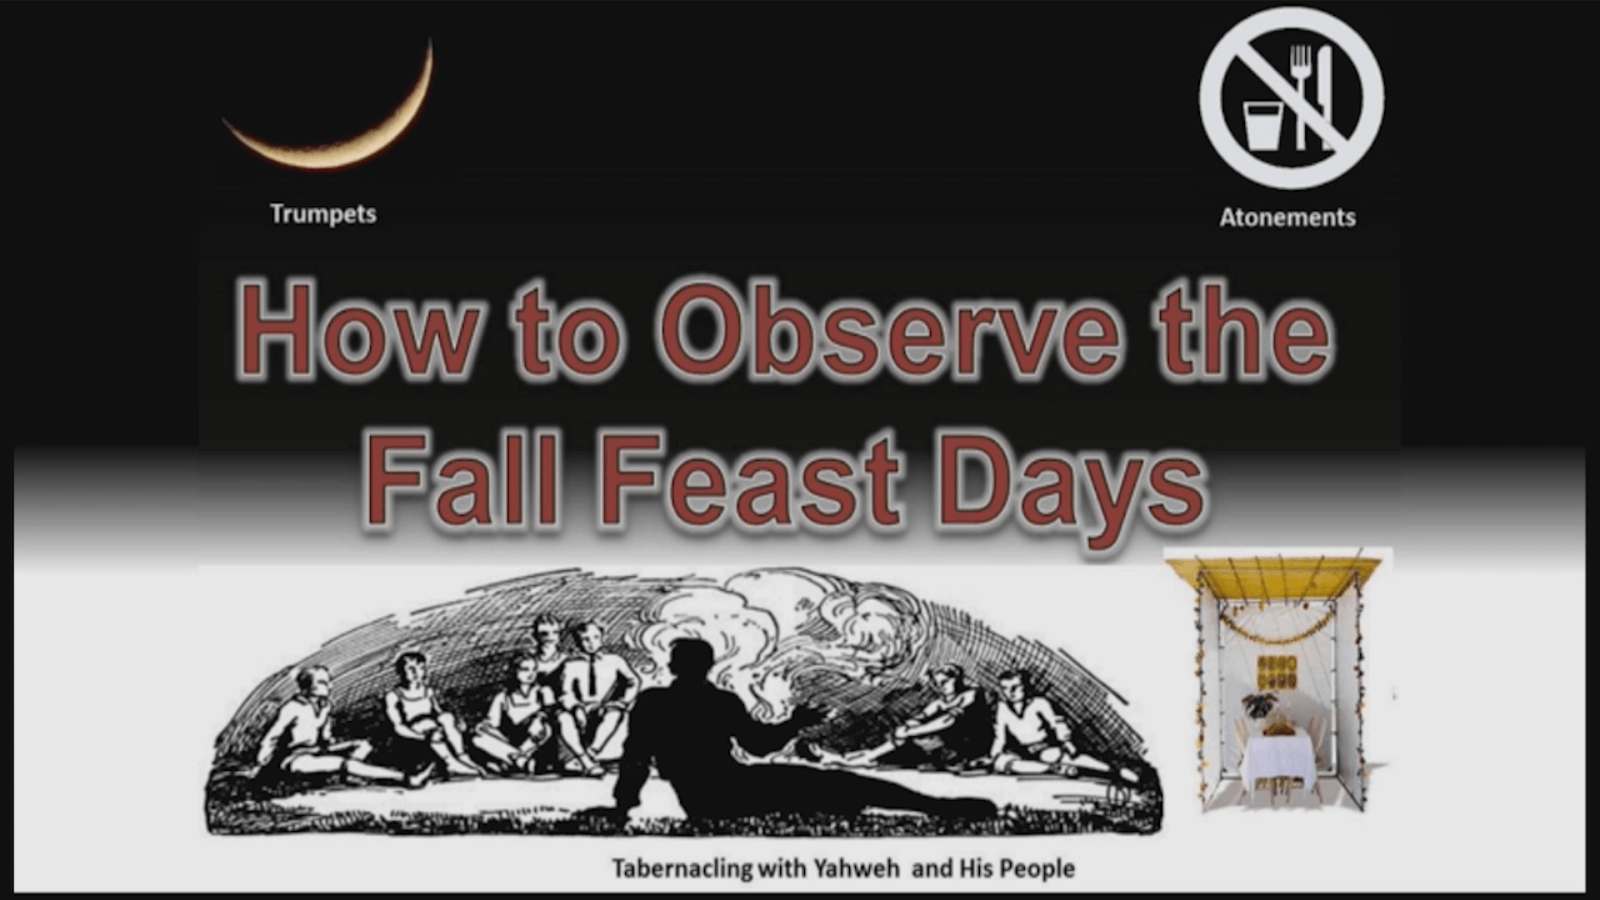 How to Observe the Fall Feast Days